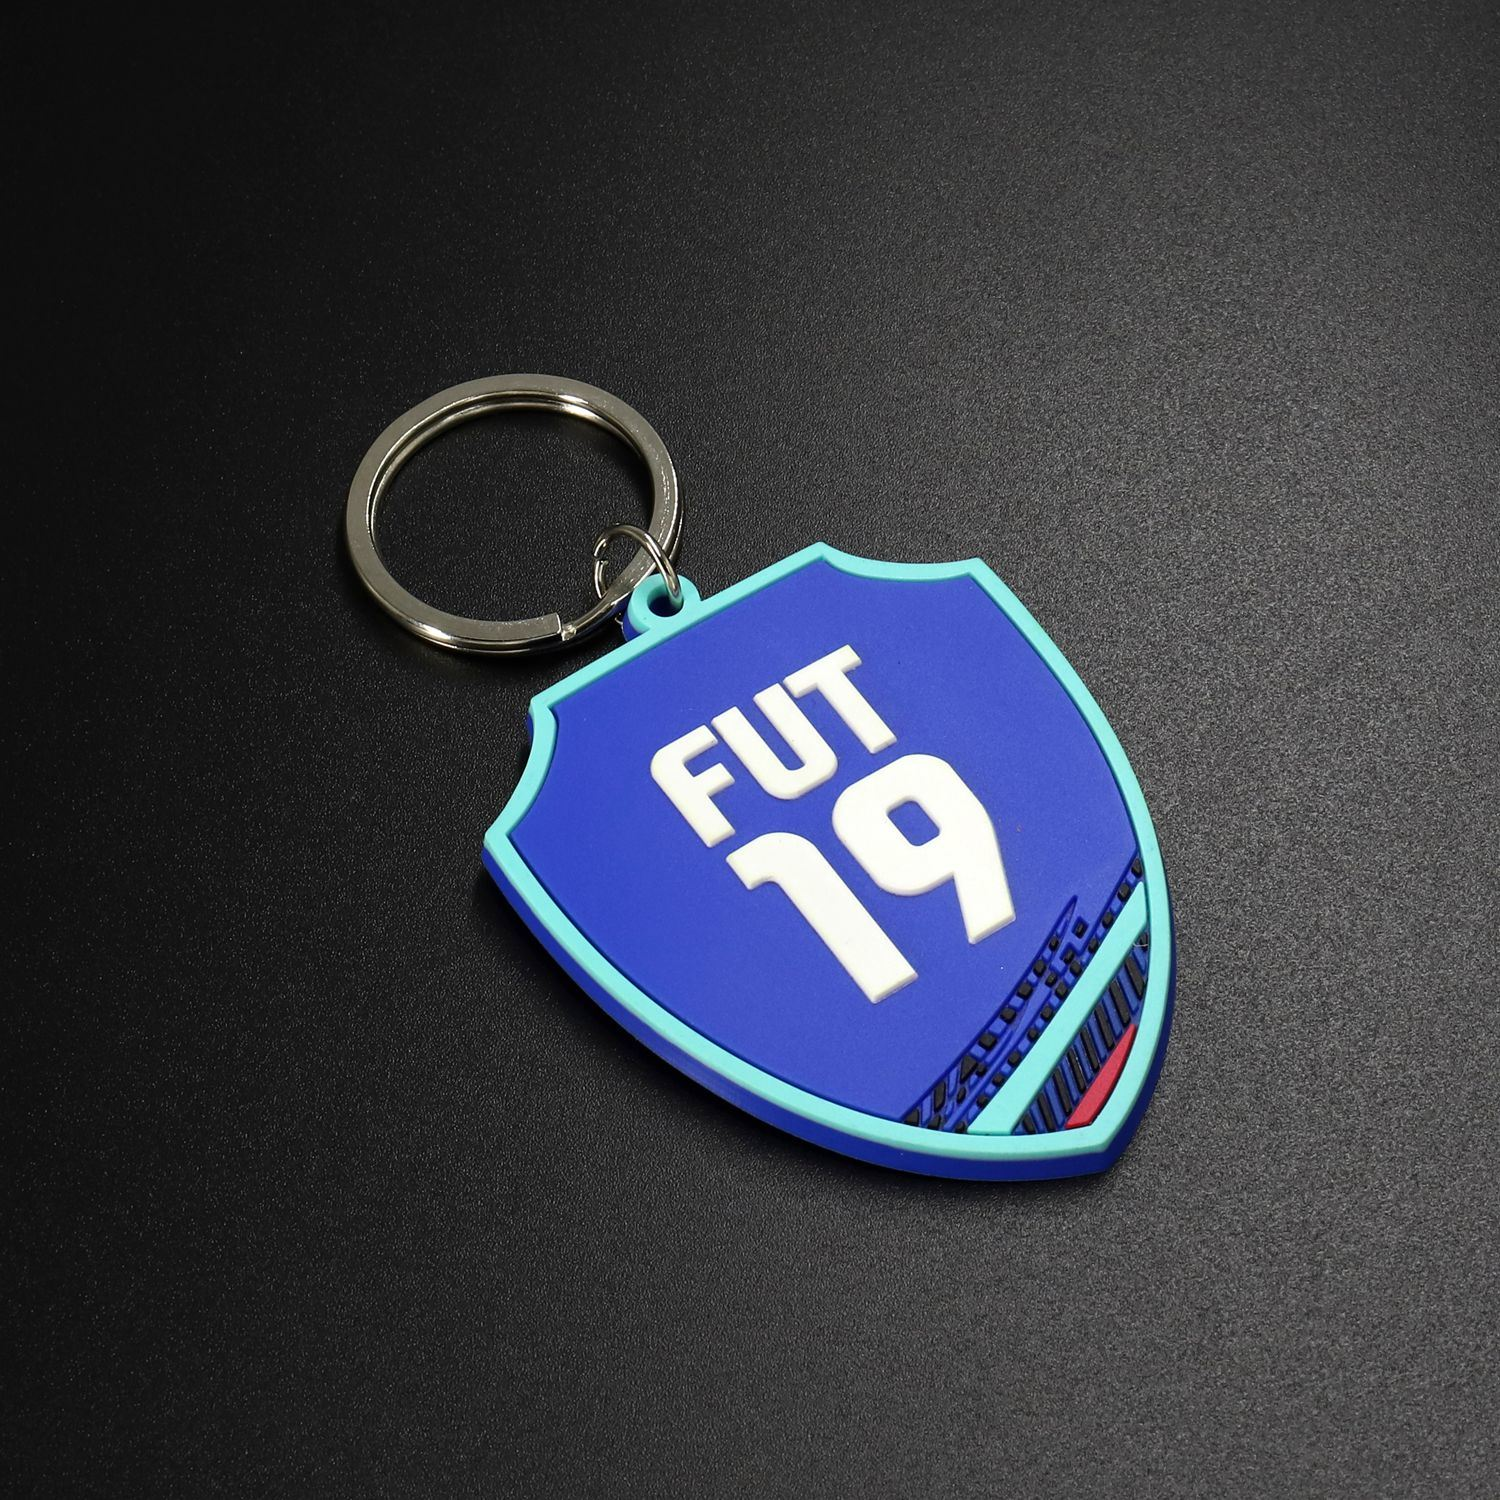 China Promotional Key Tag, Promotional Key Tag Wholesale, Manufacturers,  Price | Made-in-China com